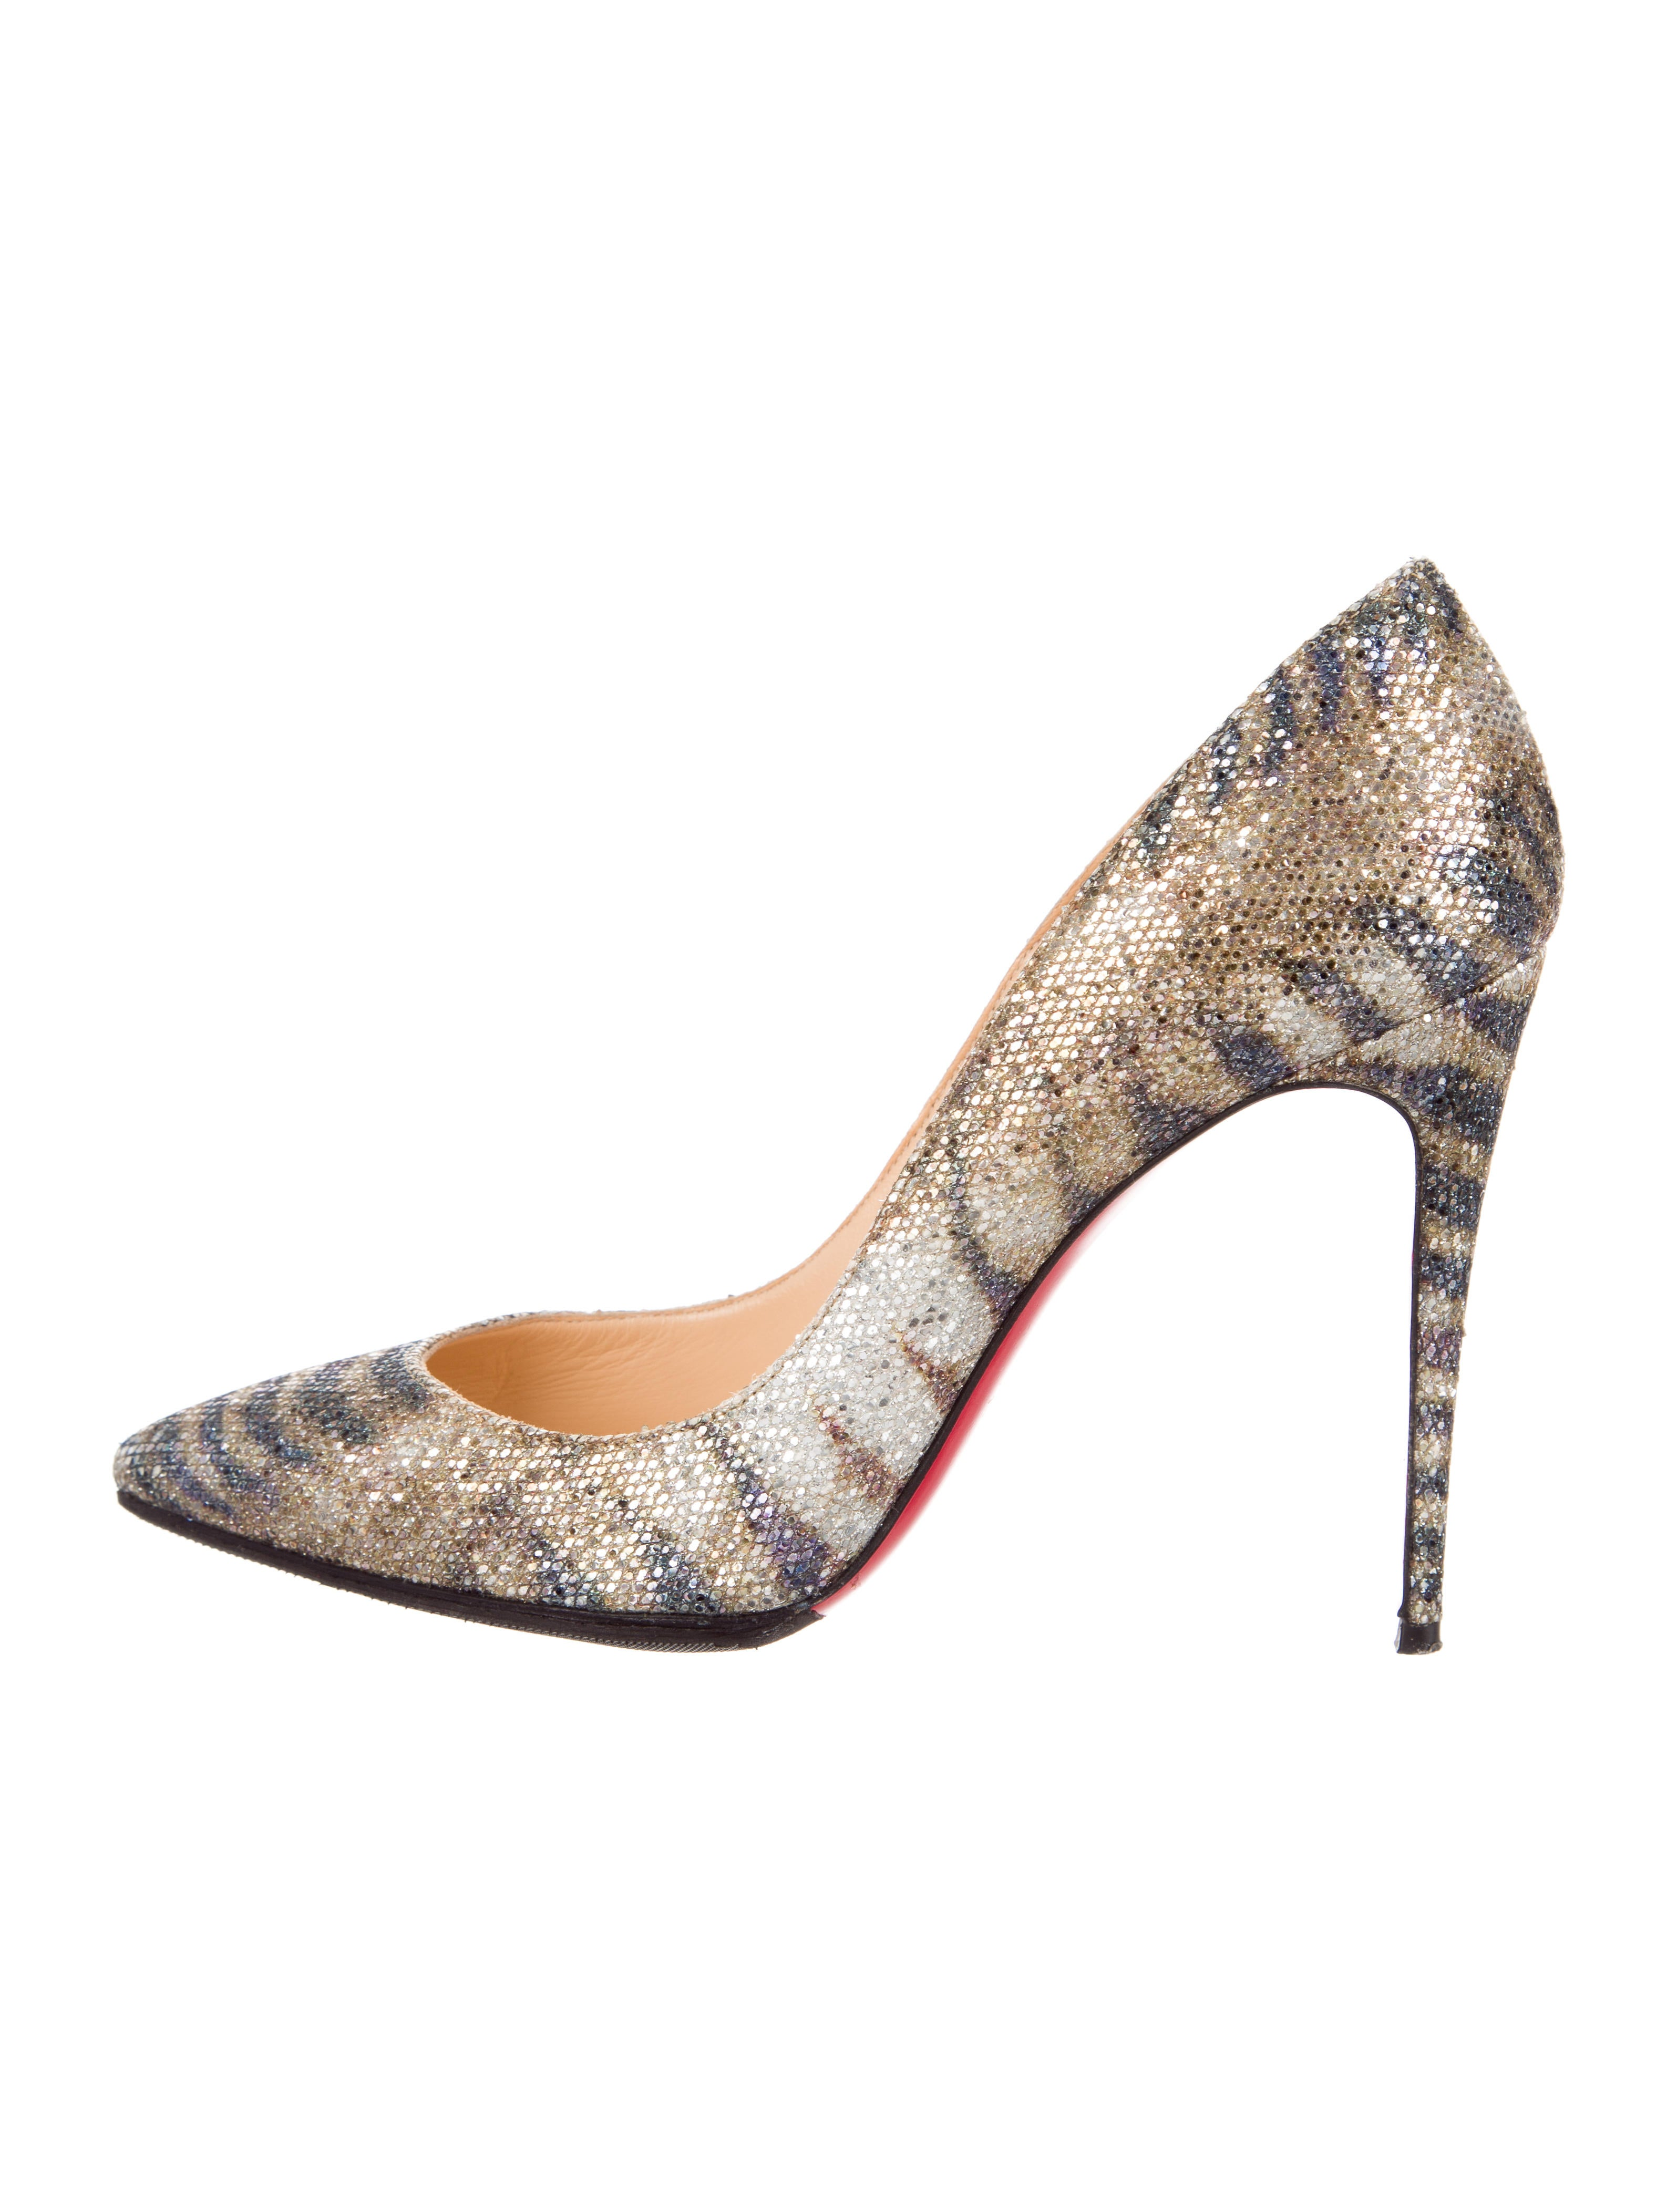 5ef5102130 Christian Louboutin Pigalle Follies 120 Pumps - Shoes - CHT85541 | The  RealReal